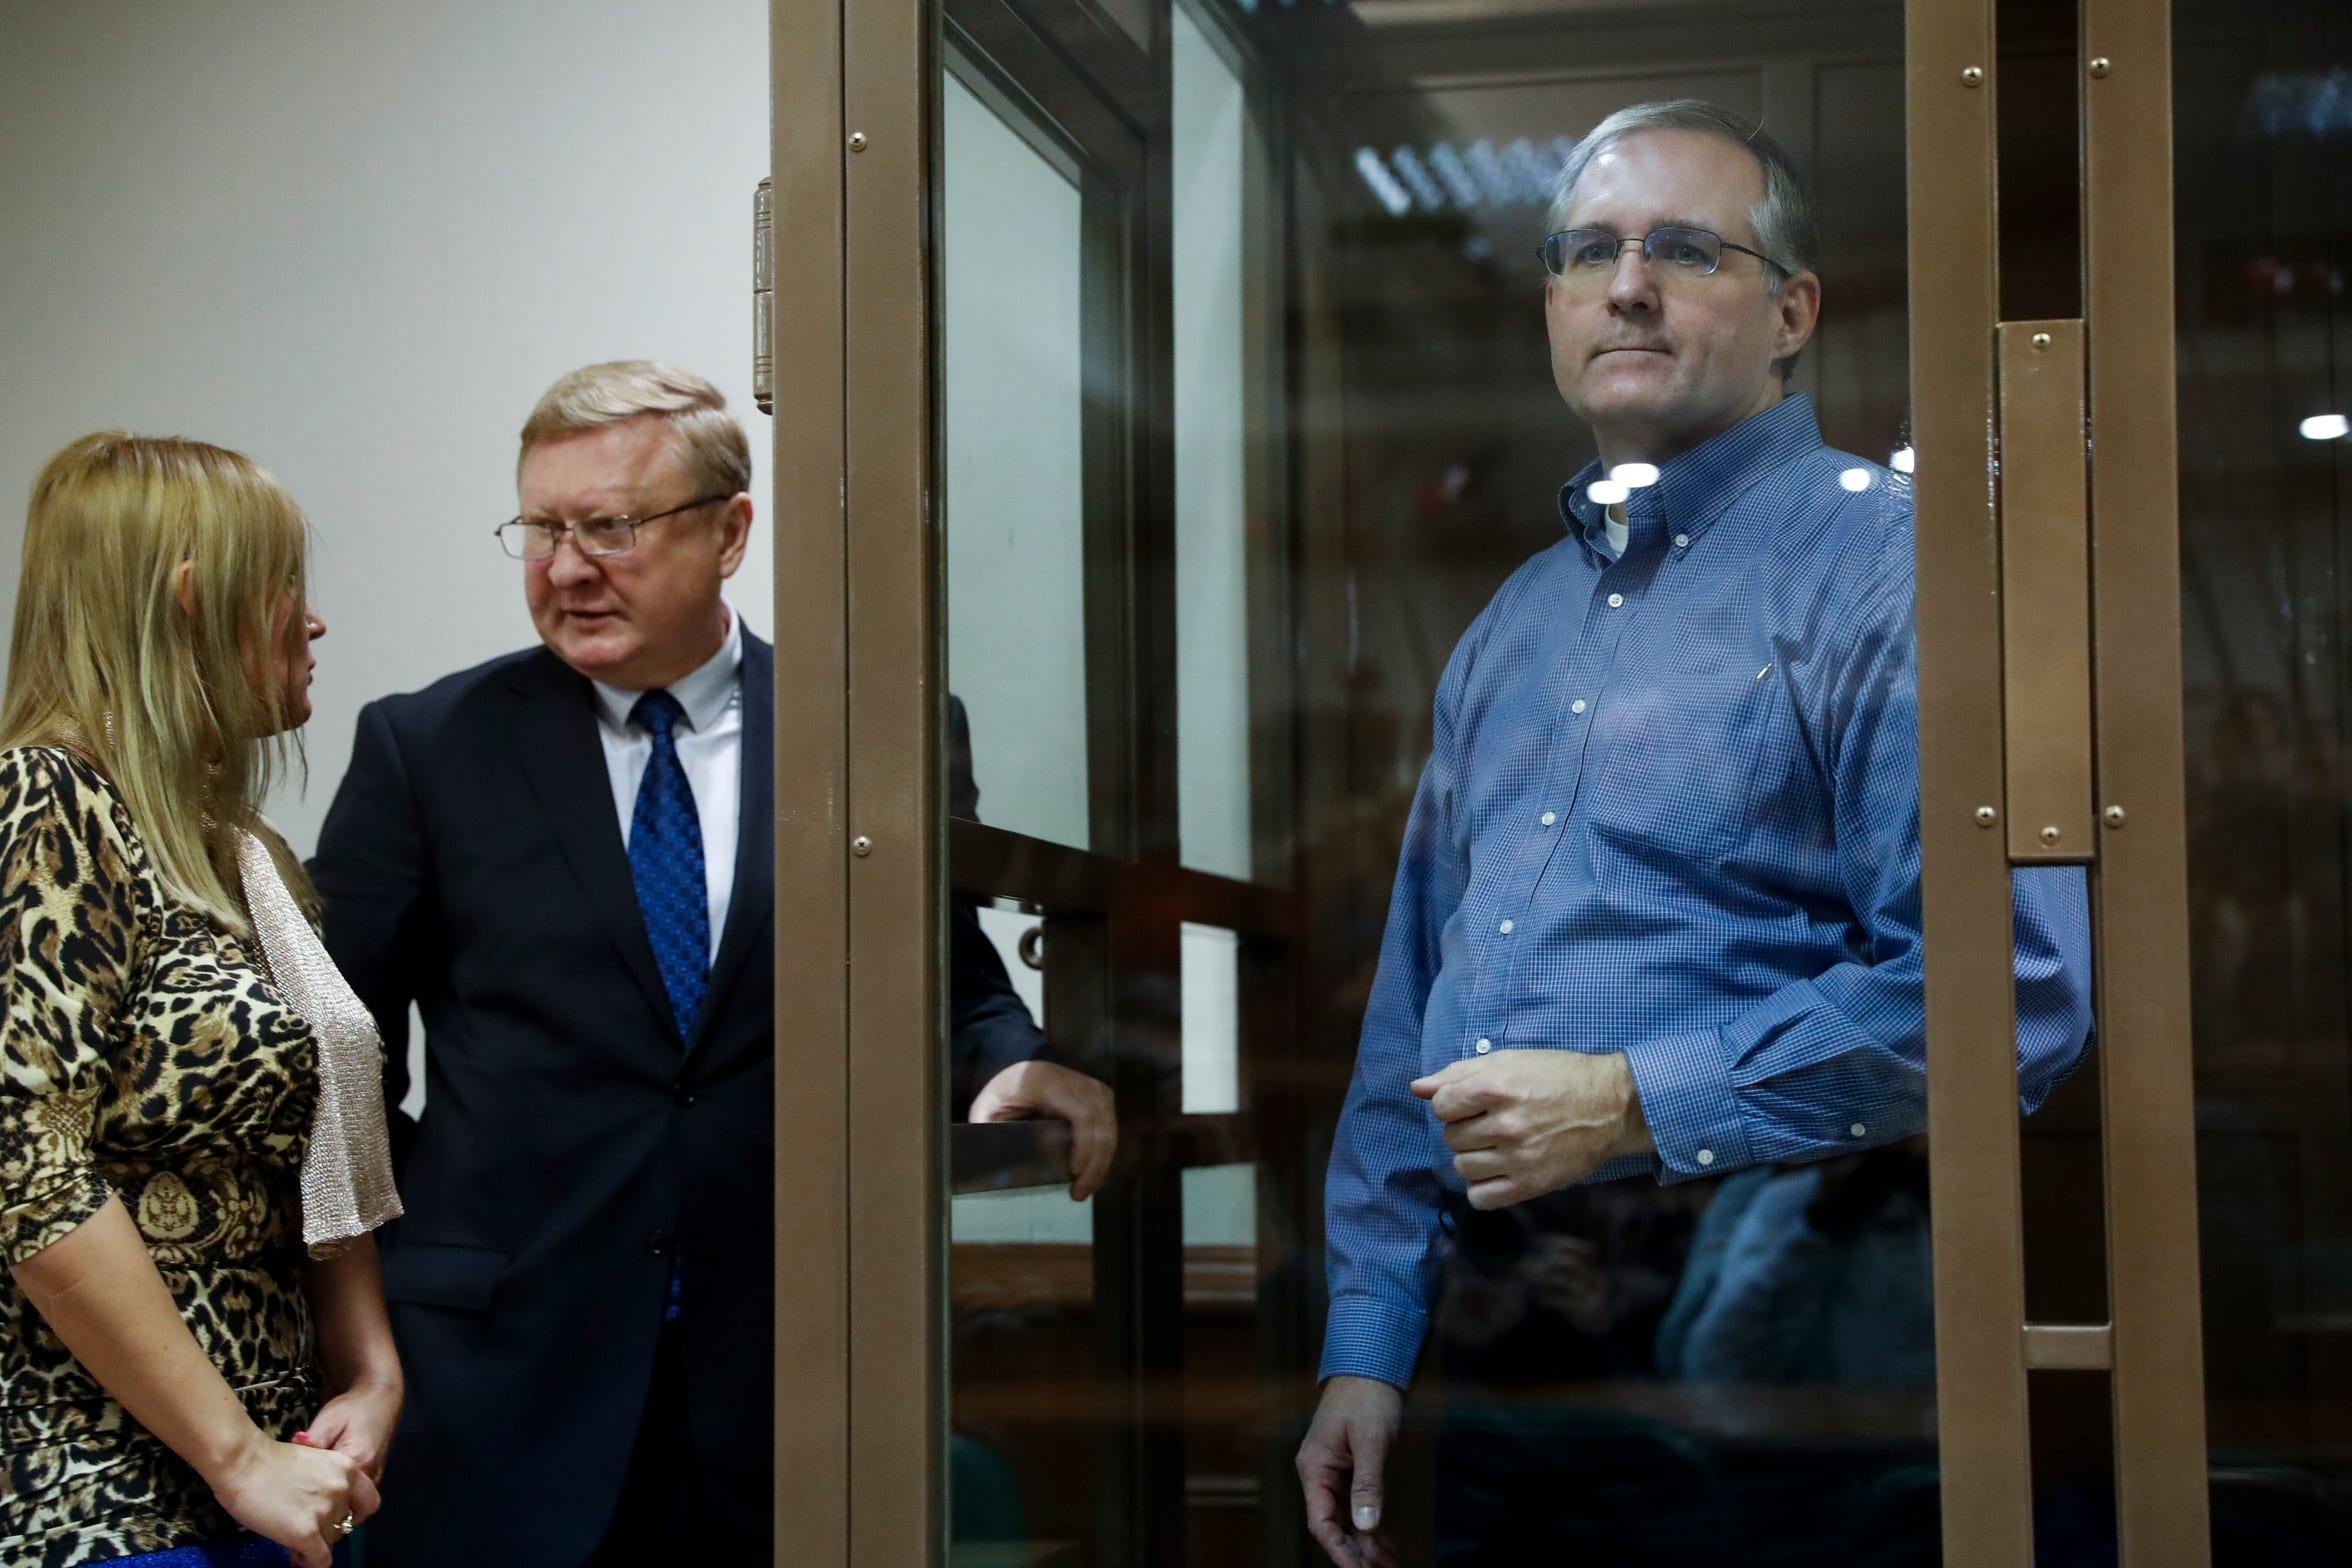 Paul Whelan, a former U.S. Marine who was arrested in Moscow at the end of last year, right, looks through a cage's glass as his lawyers talk to each other in a courtroom in Moscow, Russia, in January.